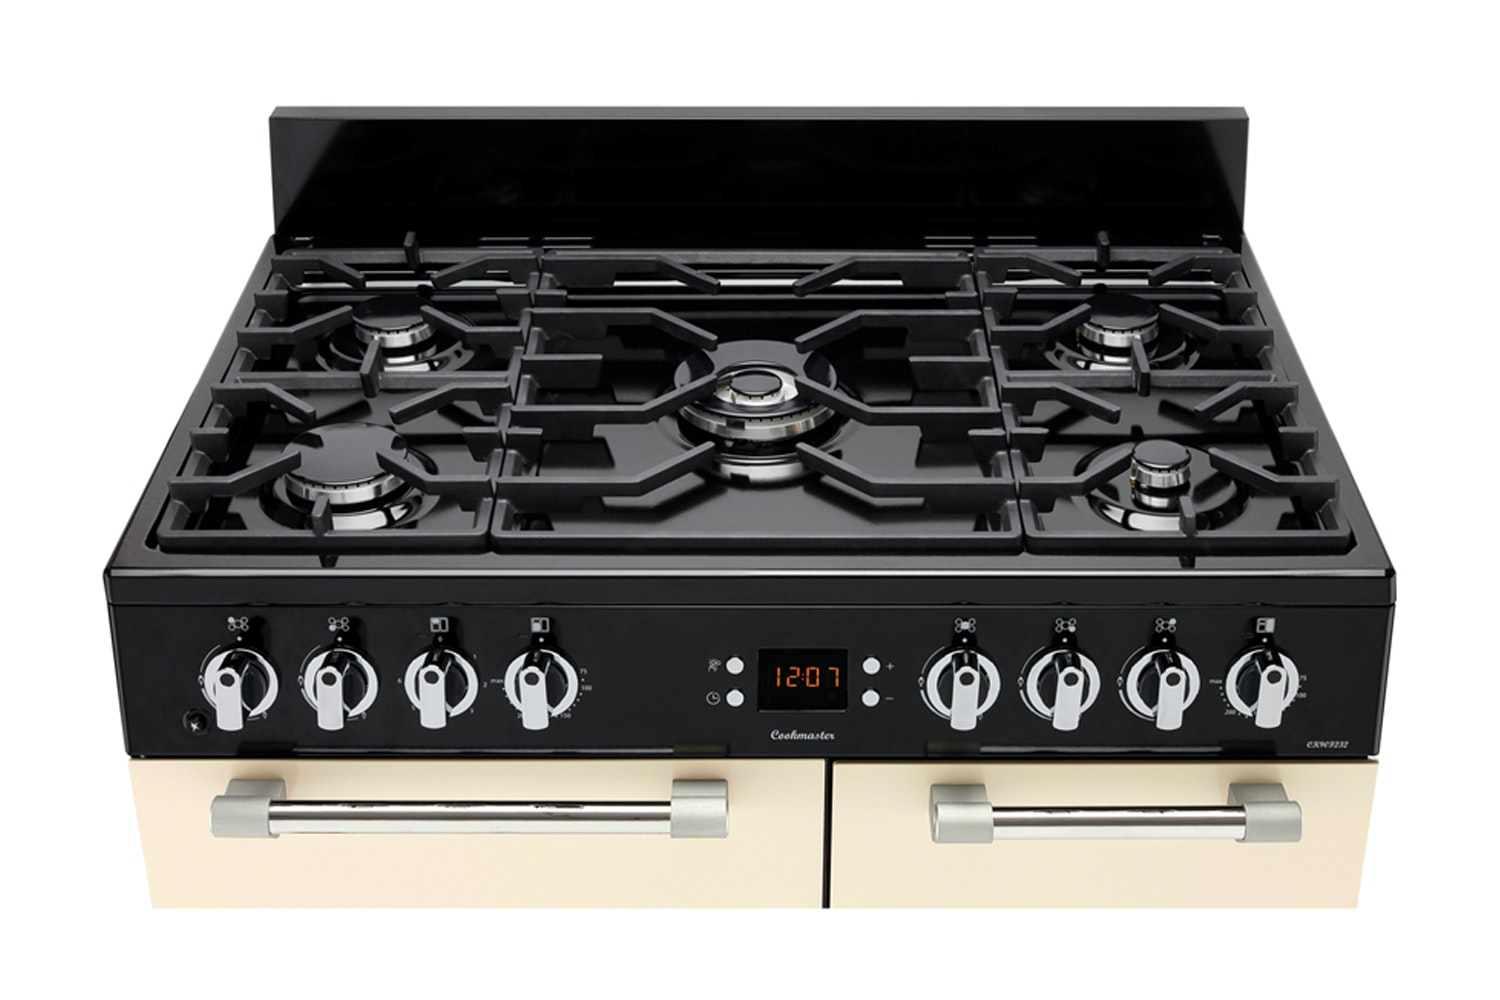 Leisure 90cm Range Cooker | CK90F232C